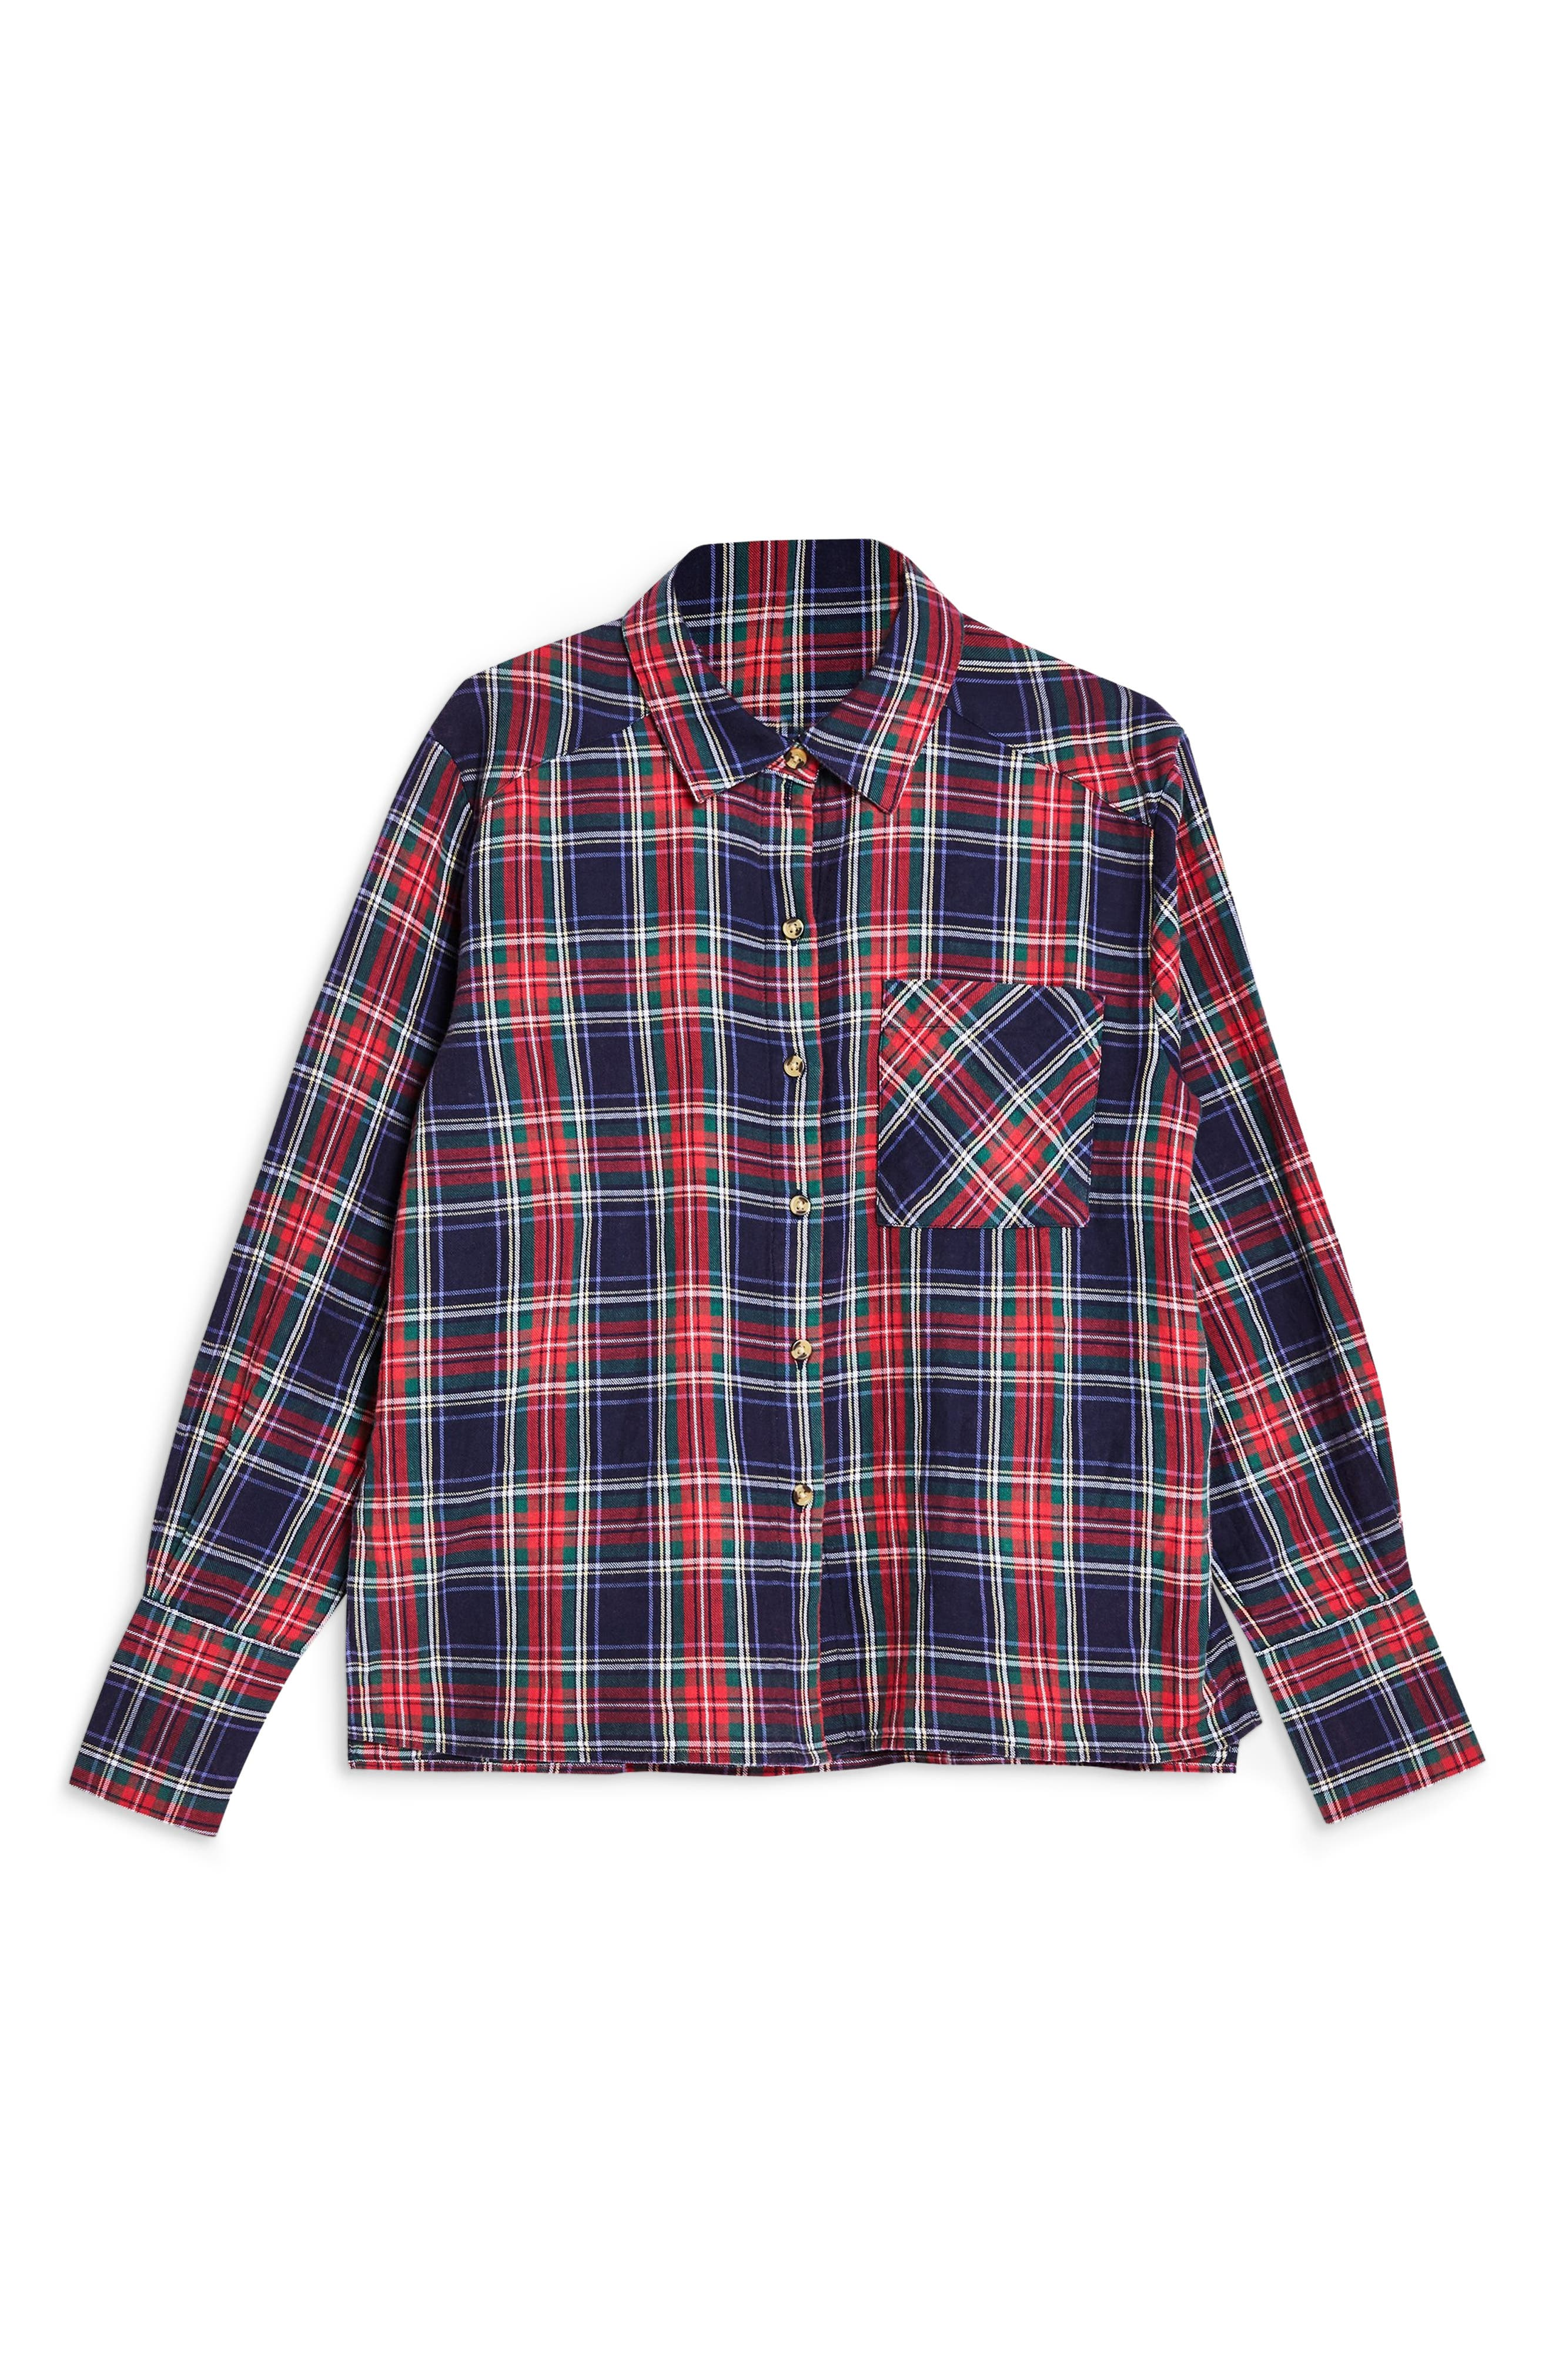 Pacey Washed Check Plaid Shirt,                             Alternate thumbnail 3, color,                             NAVY BLUE MULTI